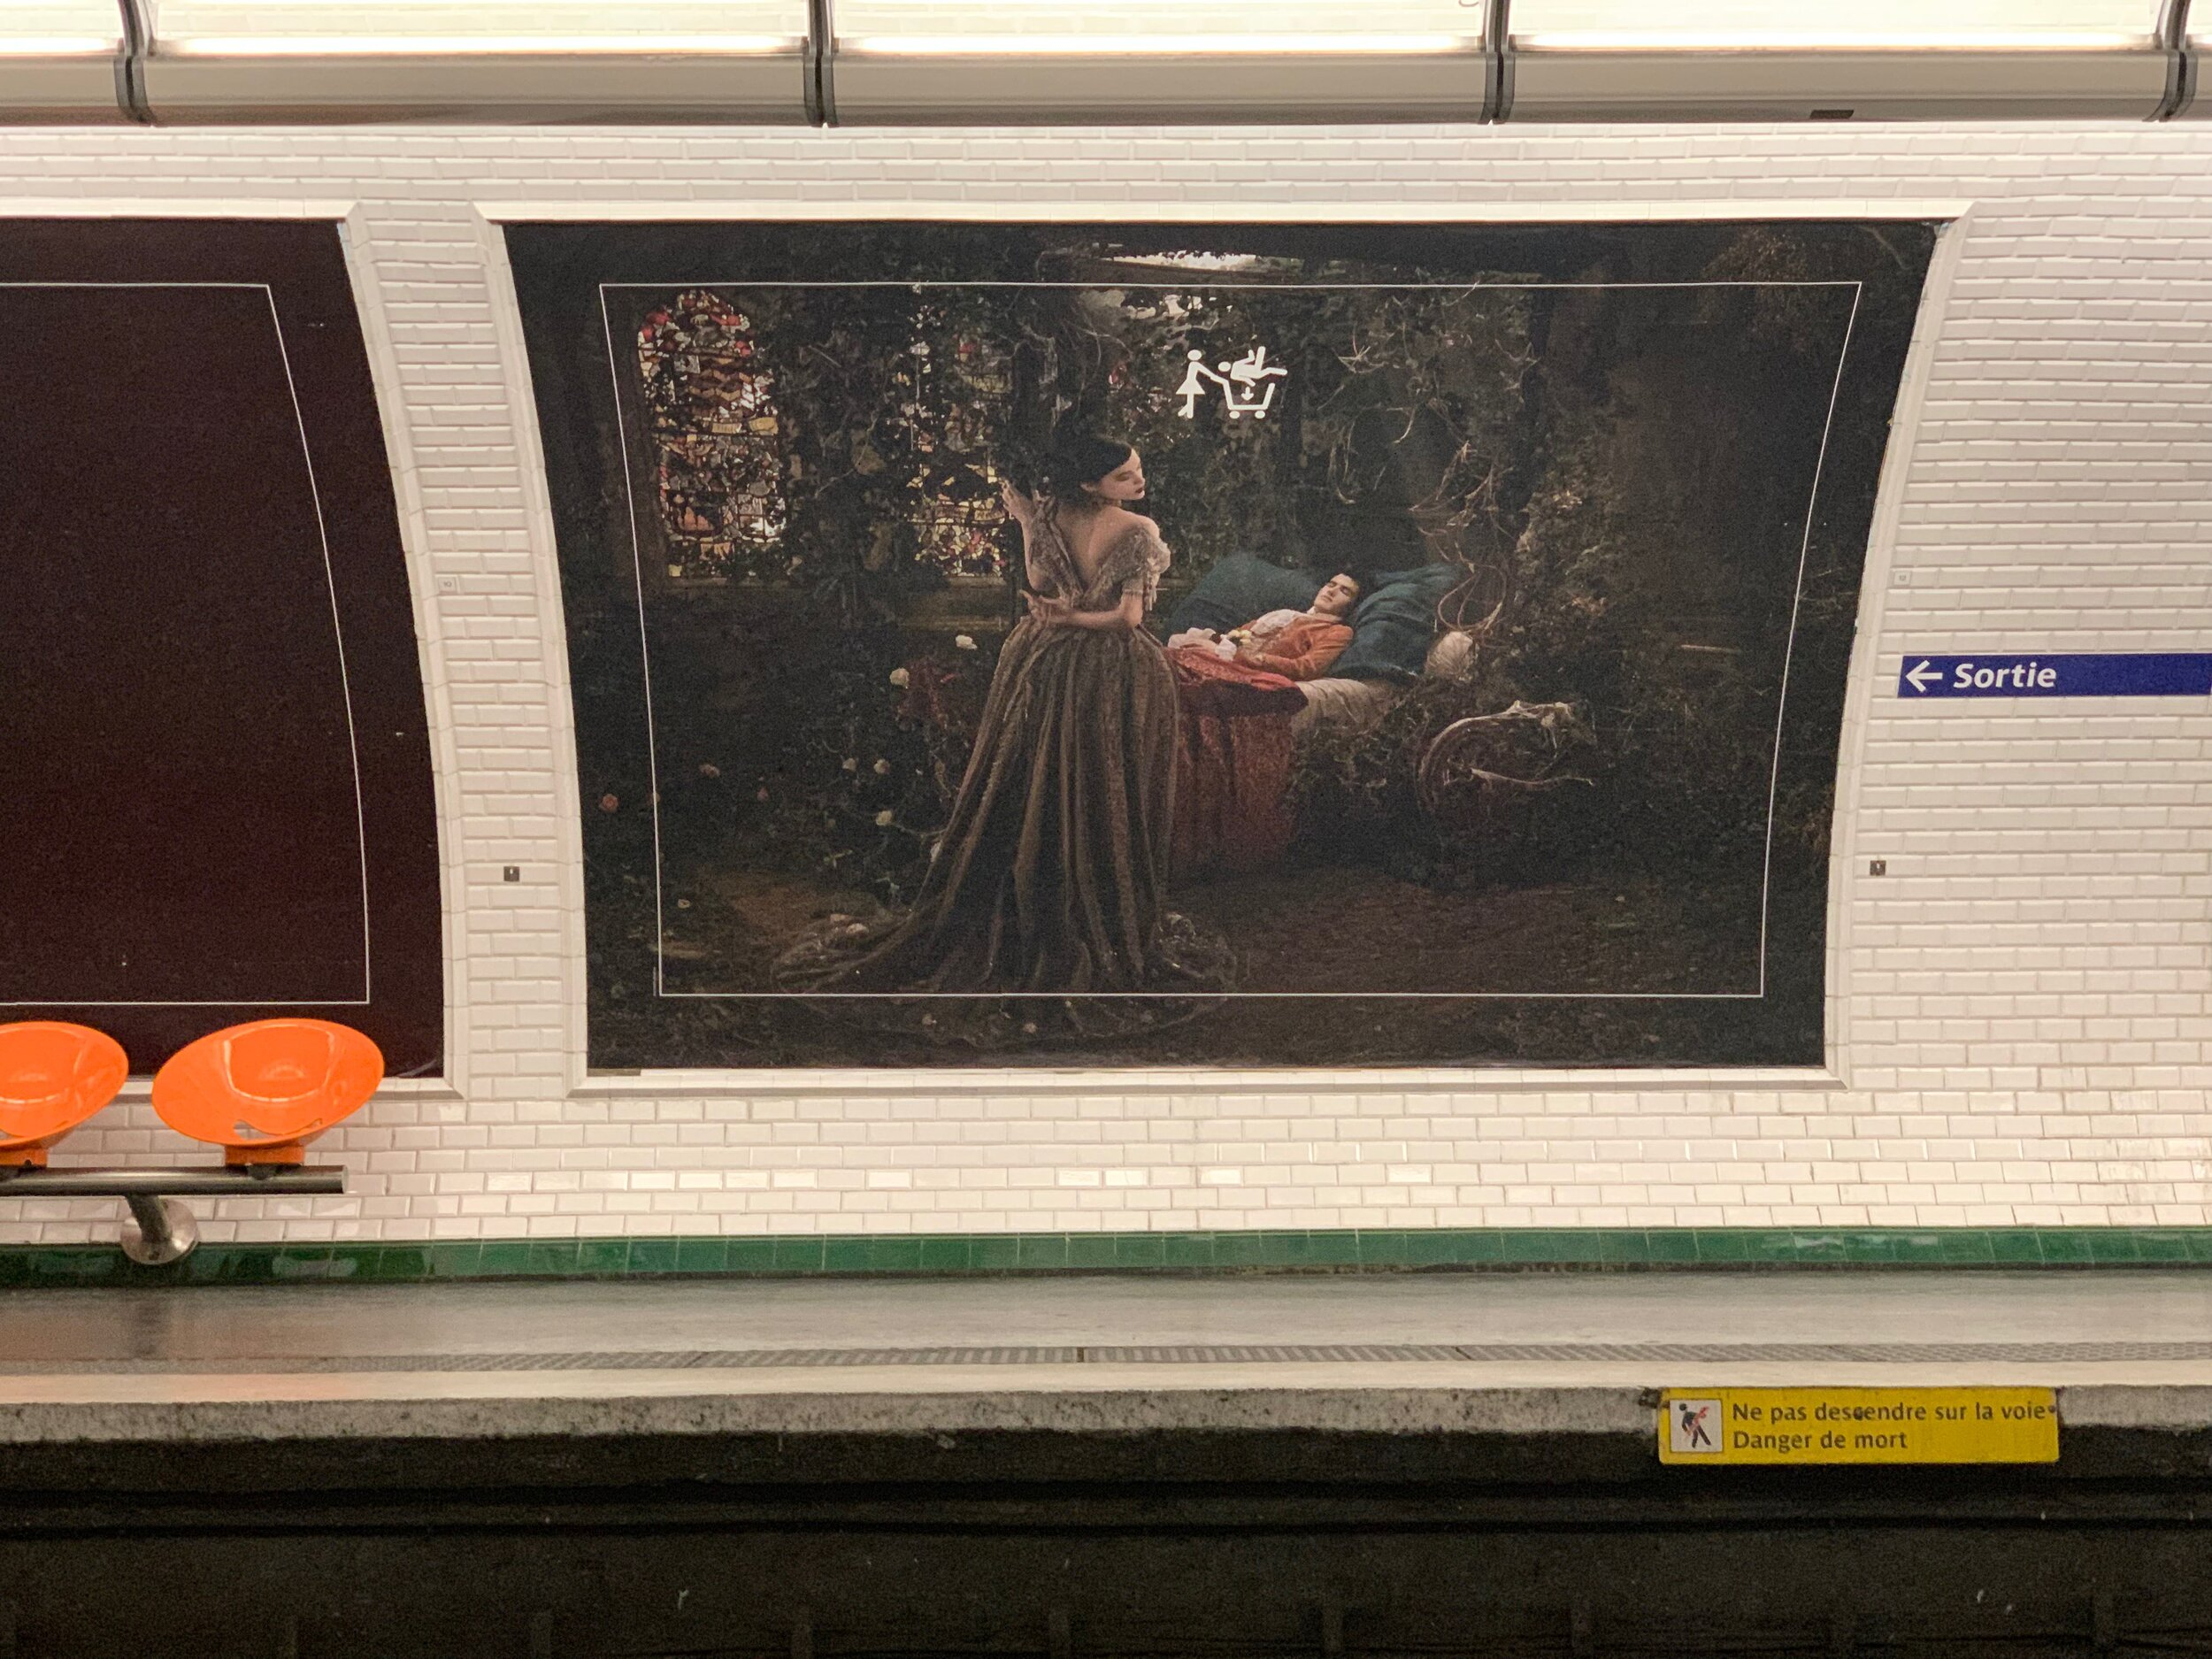 An ad in the subway - gender-swapped Sleeping Beauty